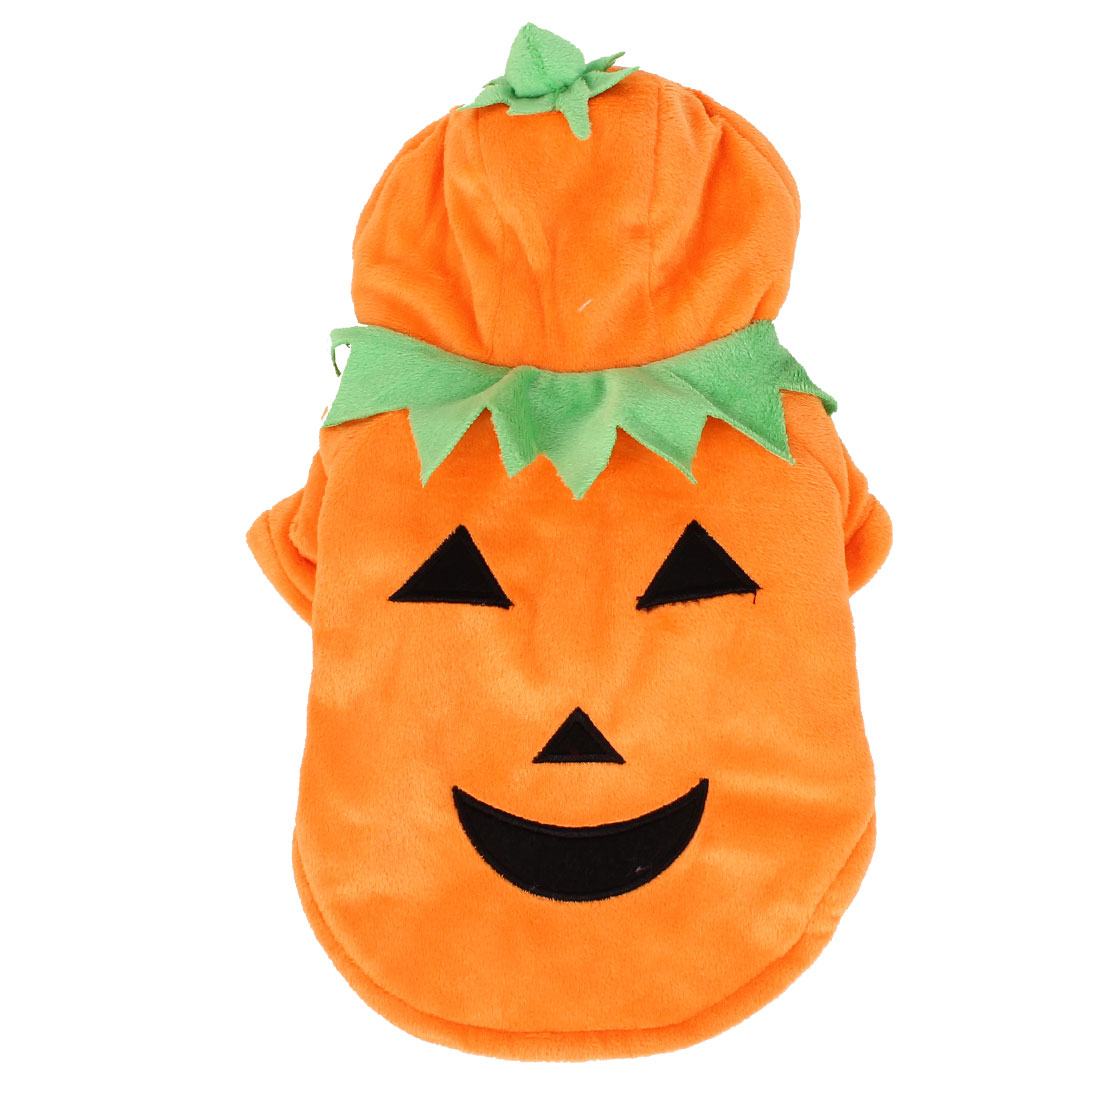 Halloween Pumpkin Shape Single Breasted Hoodie Pet Dog Doggy Clothes Apparel Orange Size M